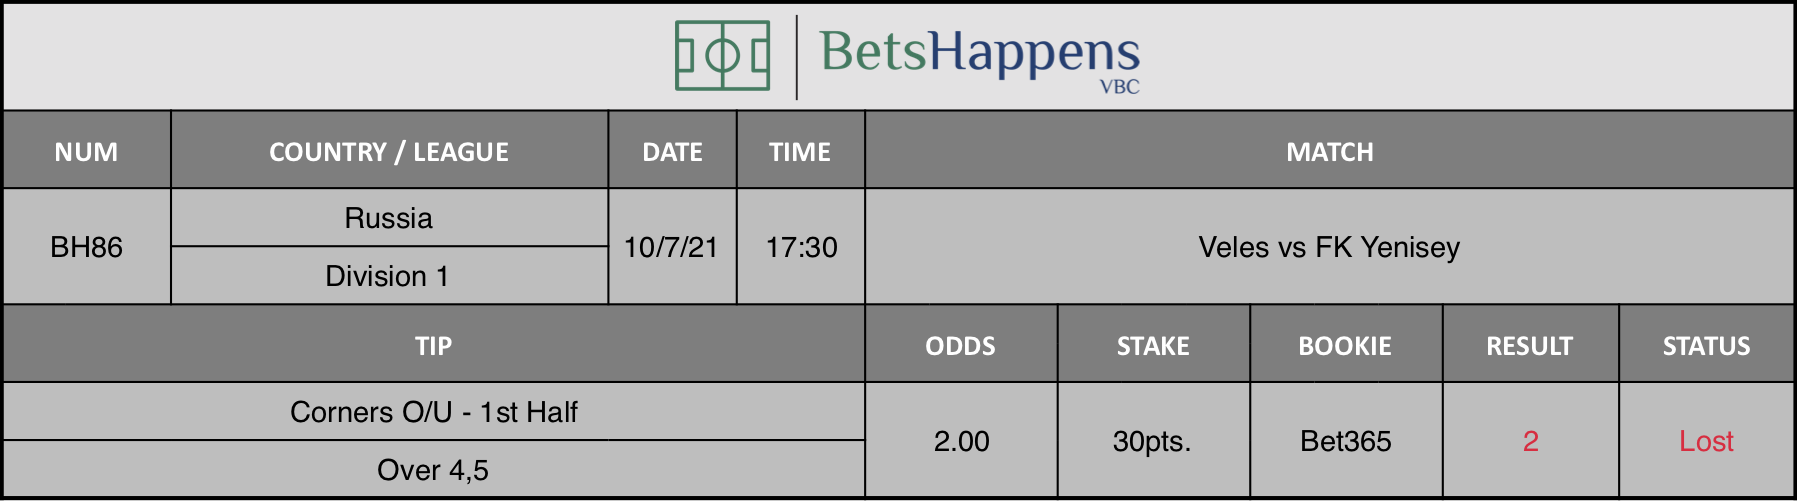 Results of our advice for the Veles vs FK Yenisey match in which Corners O/U - 1st Half  Over 4,5 is recommended.